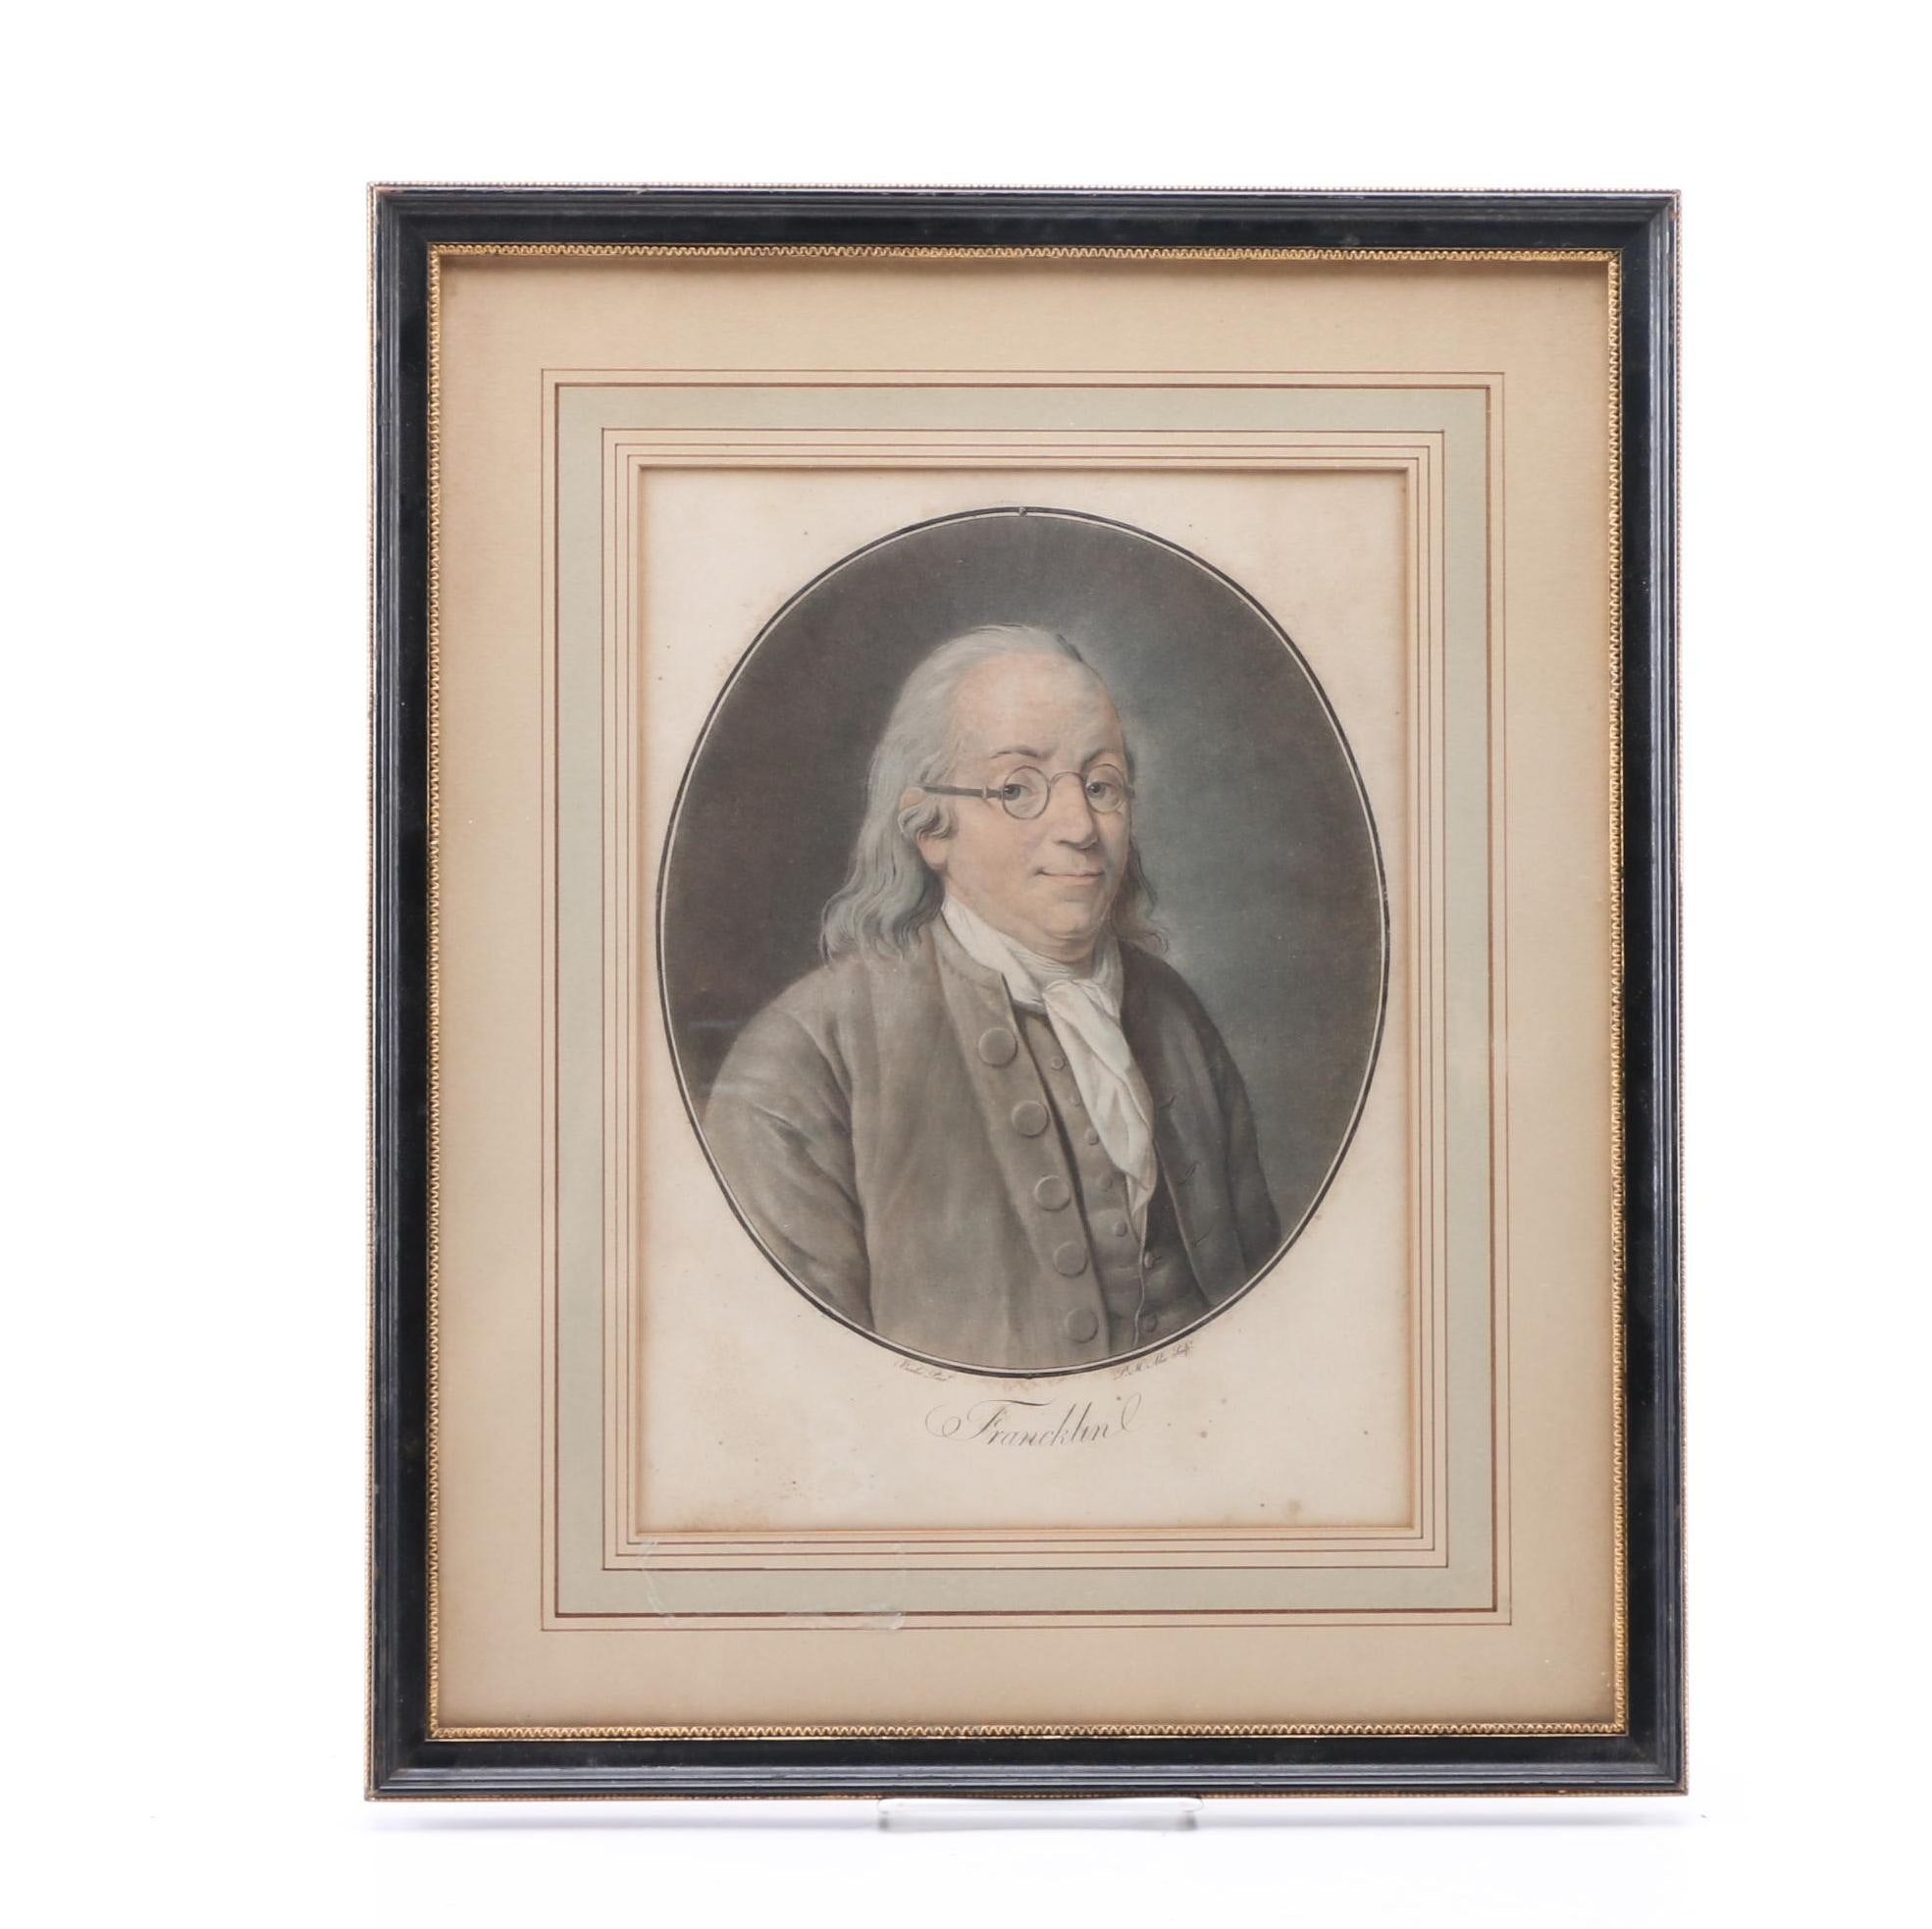 Color Lithograph After Pierre-Michel Alix's Engraving of Benjamin Franklin